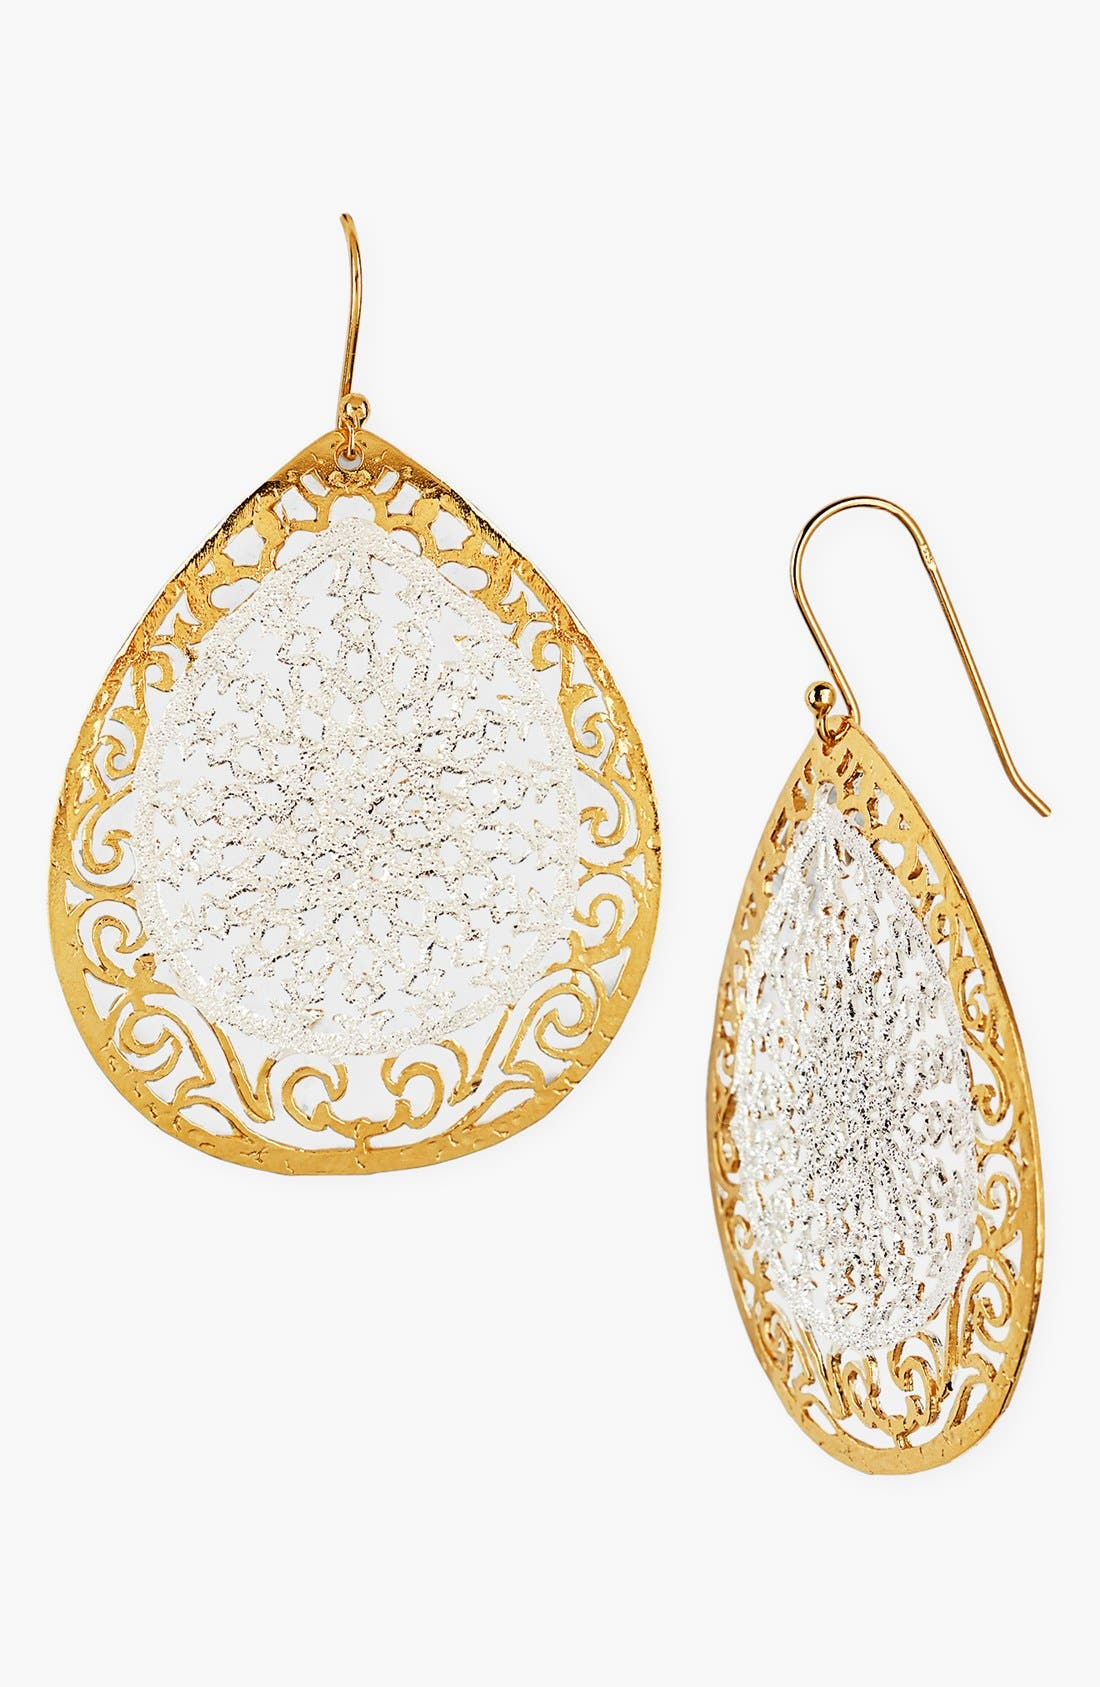 Alternate Image 1 Selected - Argento Vivo 'Glitter' Teardrop Earrings